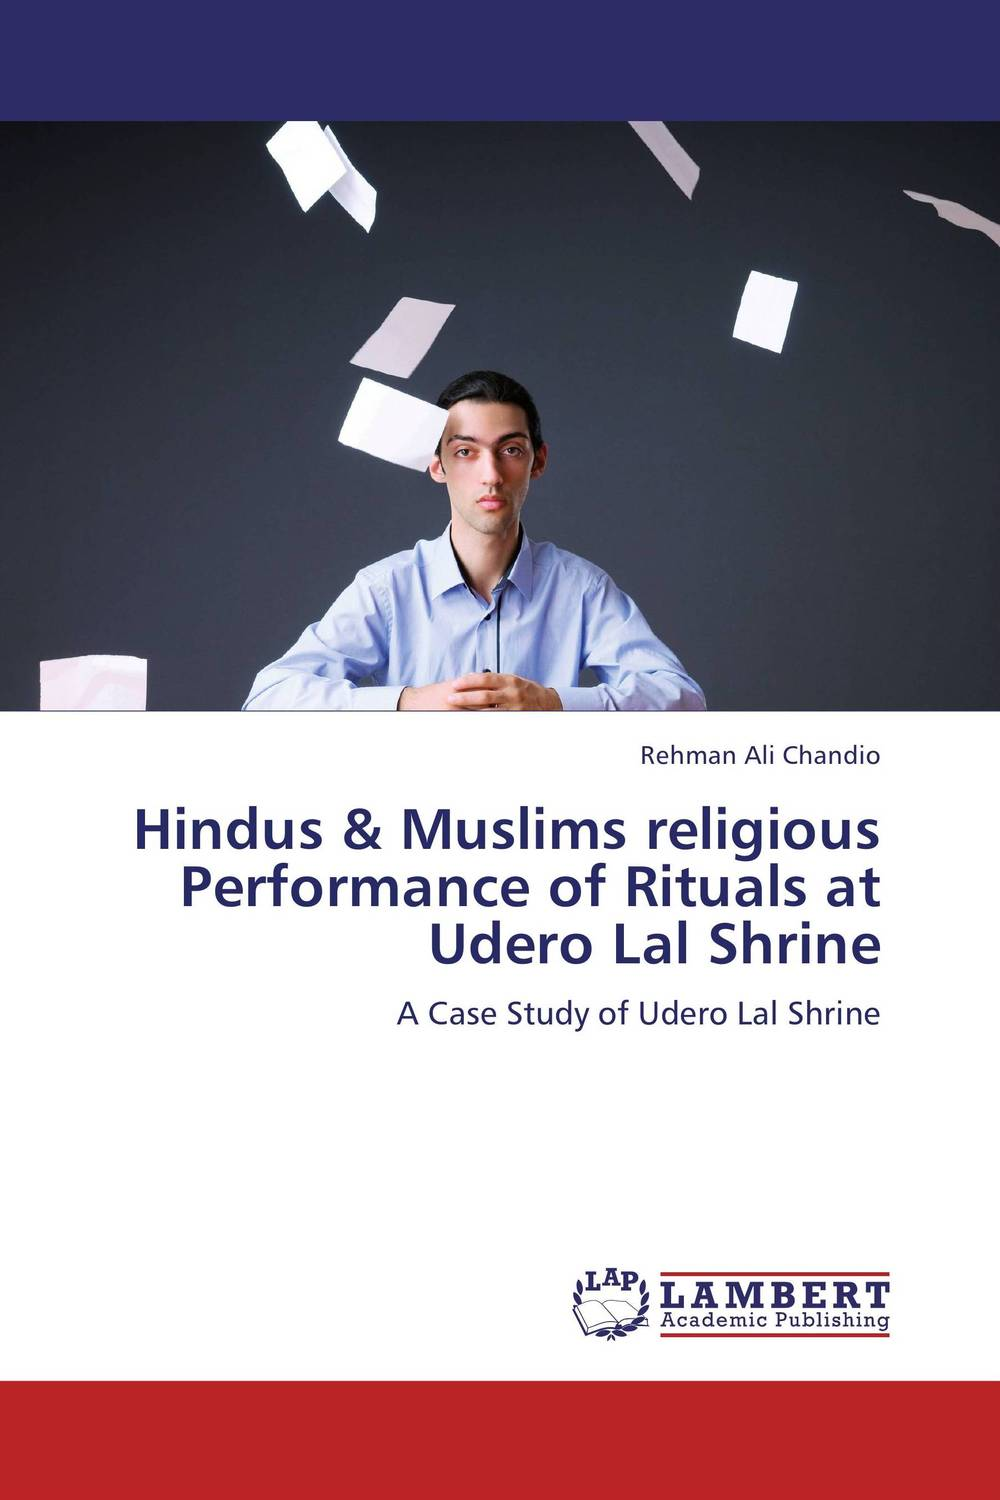 Hindus & Muslims religious Performance of Rituals at Udero Lal Shrine